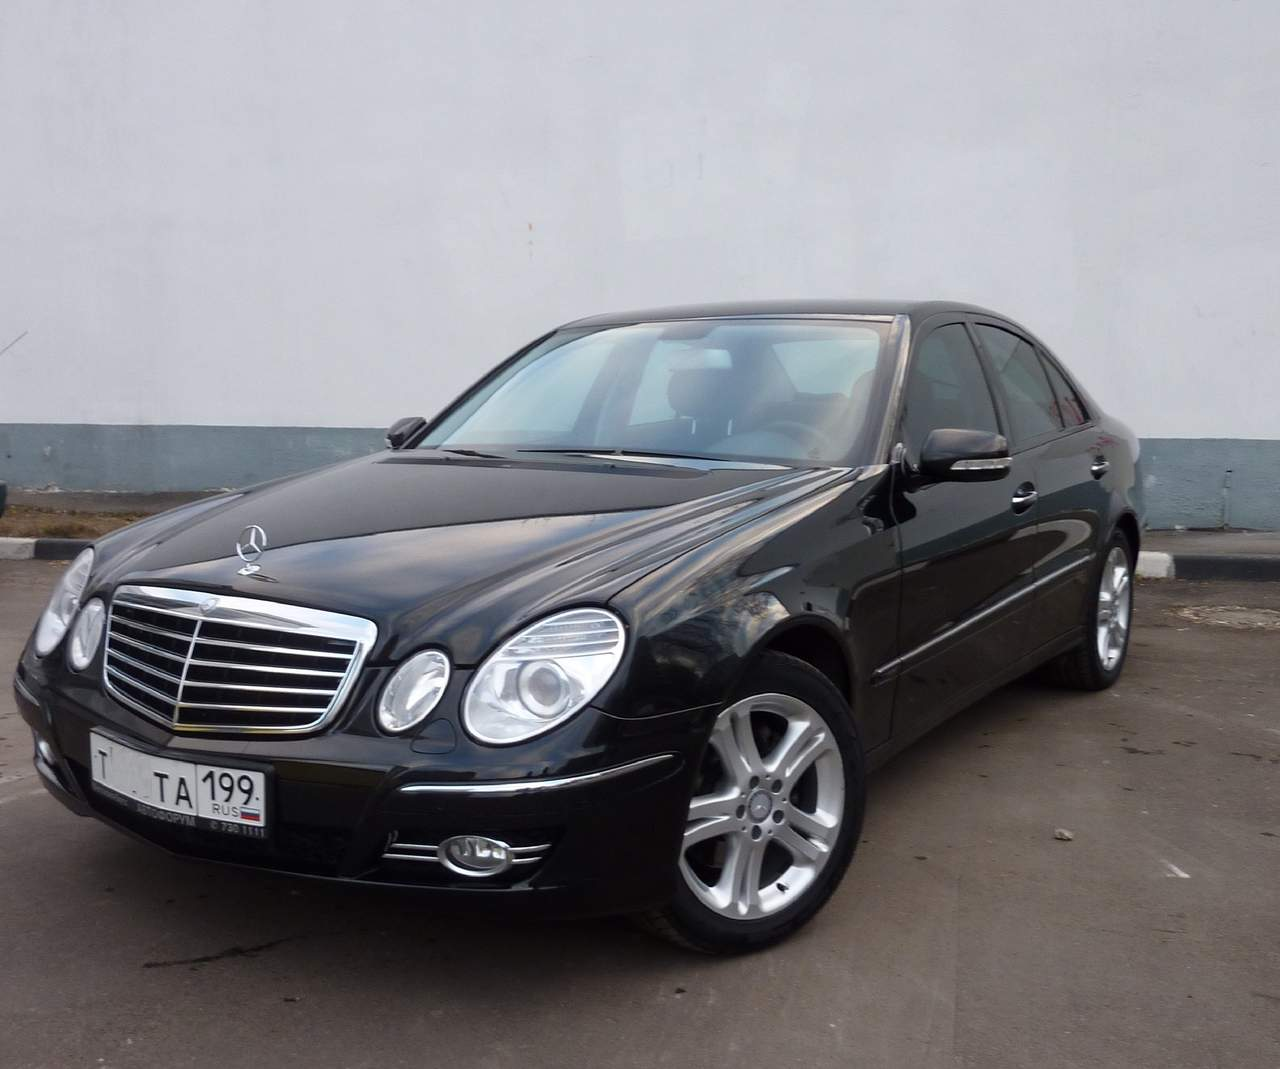 2008 mercedes benz e class photos gasoline automatic for for Mercedes benz e 350 2008